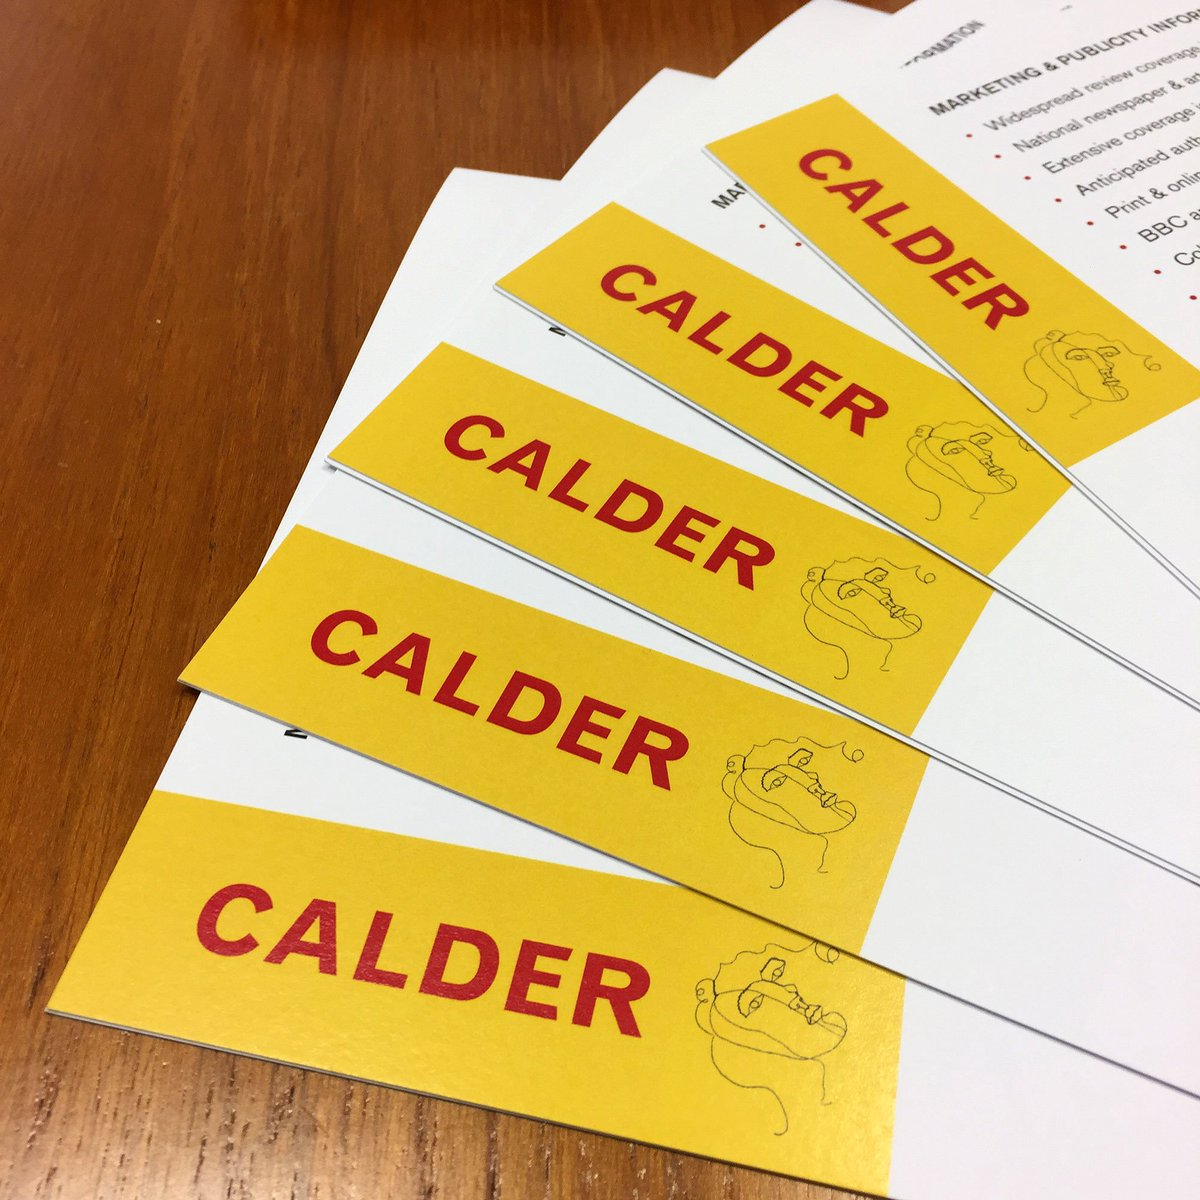 Sure to be one of Autumn&#39;s biggest players - Calder: The Conquest of Time by Jed Perl  http:// yalebooks.co.uk/display.asp?K= 9780300233315 &nbsp; …  #calder #conquestoftime<br>http://pic.twitter.com/QXMkQzbvuy